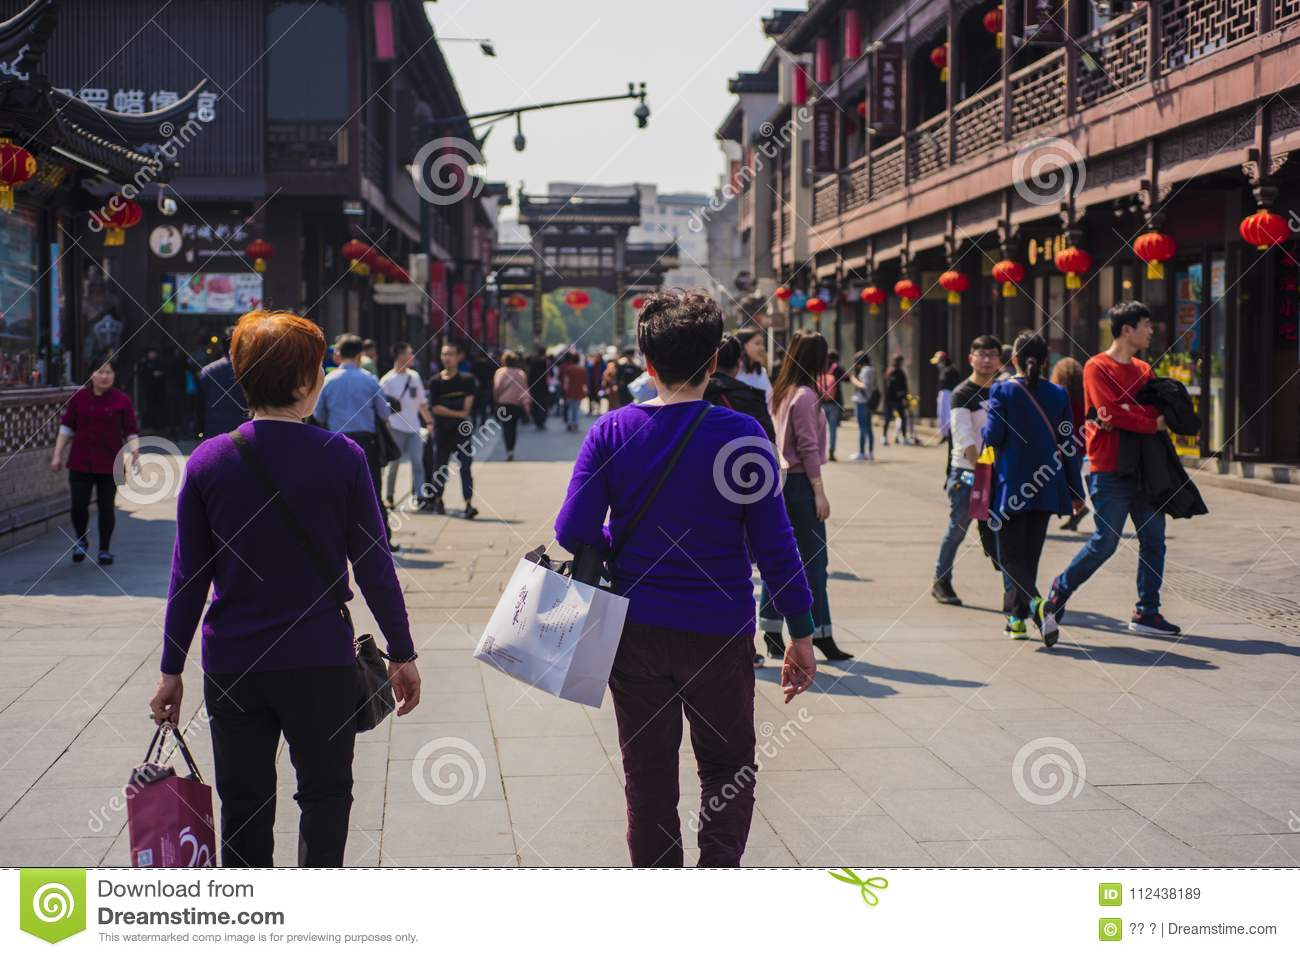 Two women in purple blouses pass by temple square.